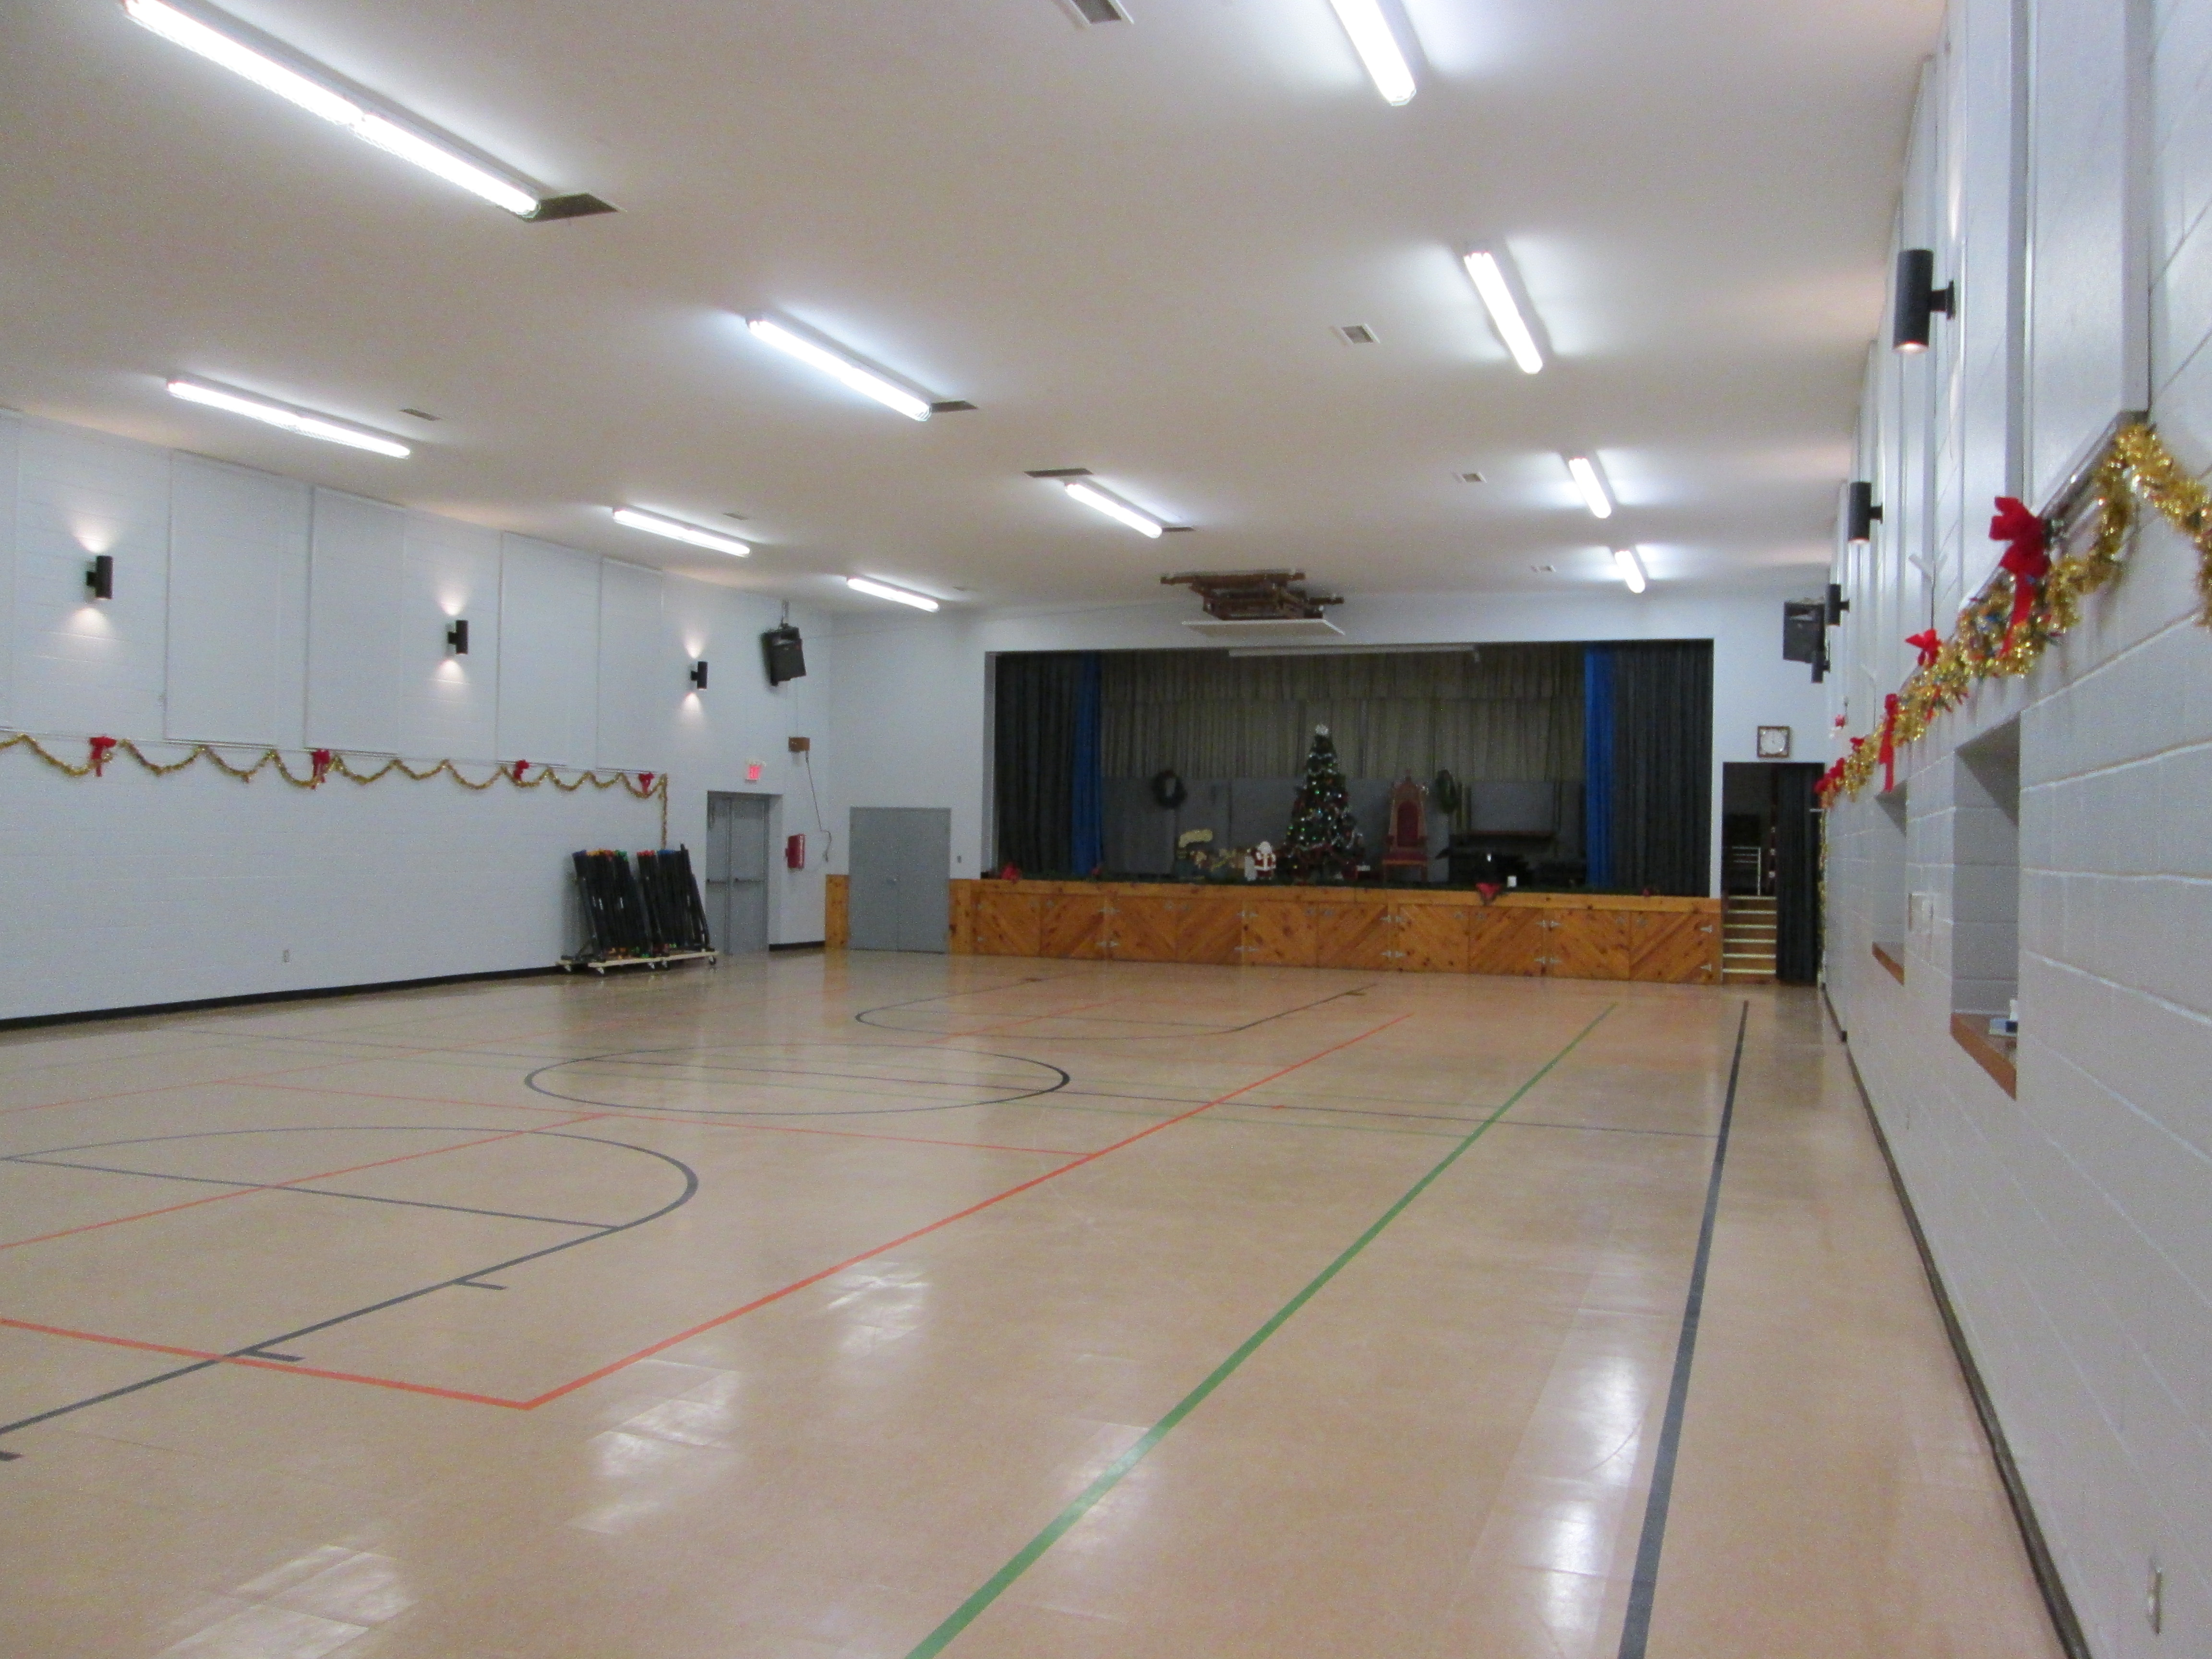 Gymnasium Stage View